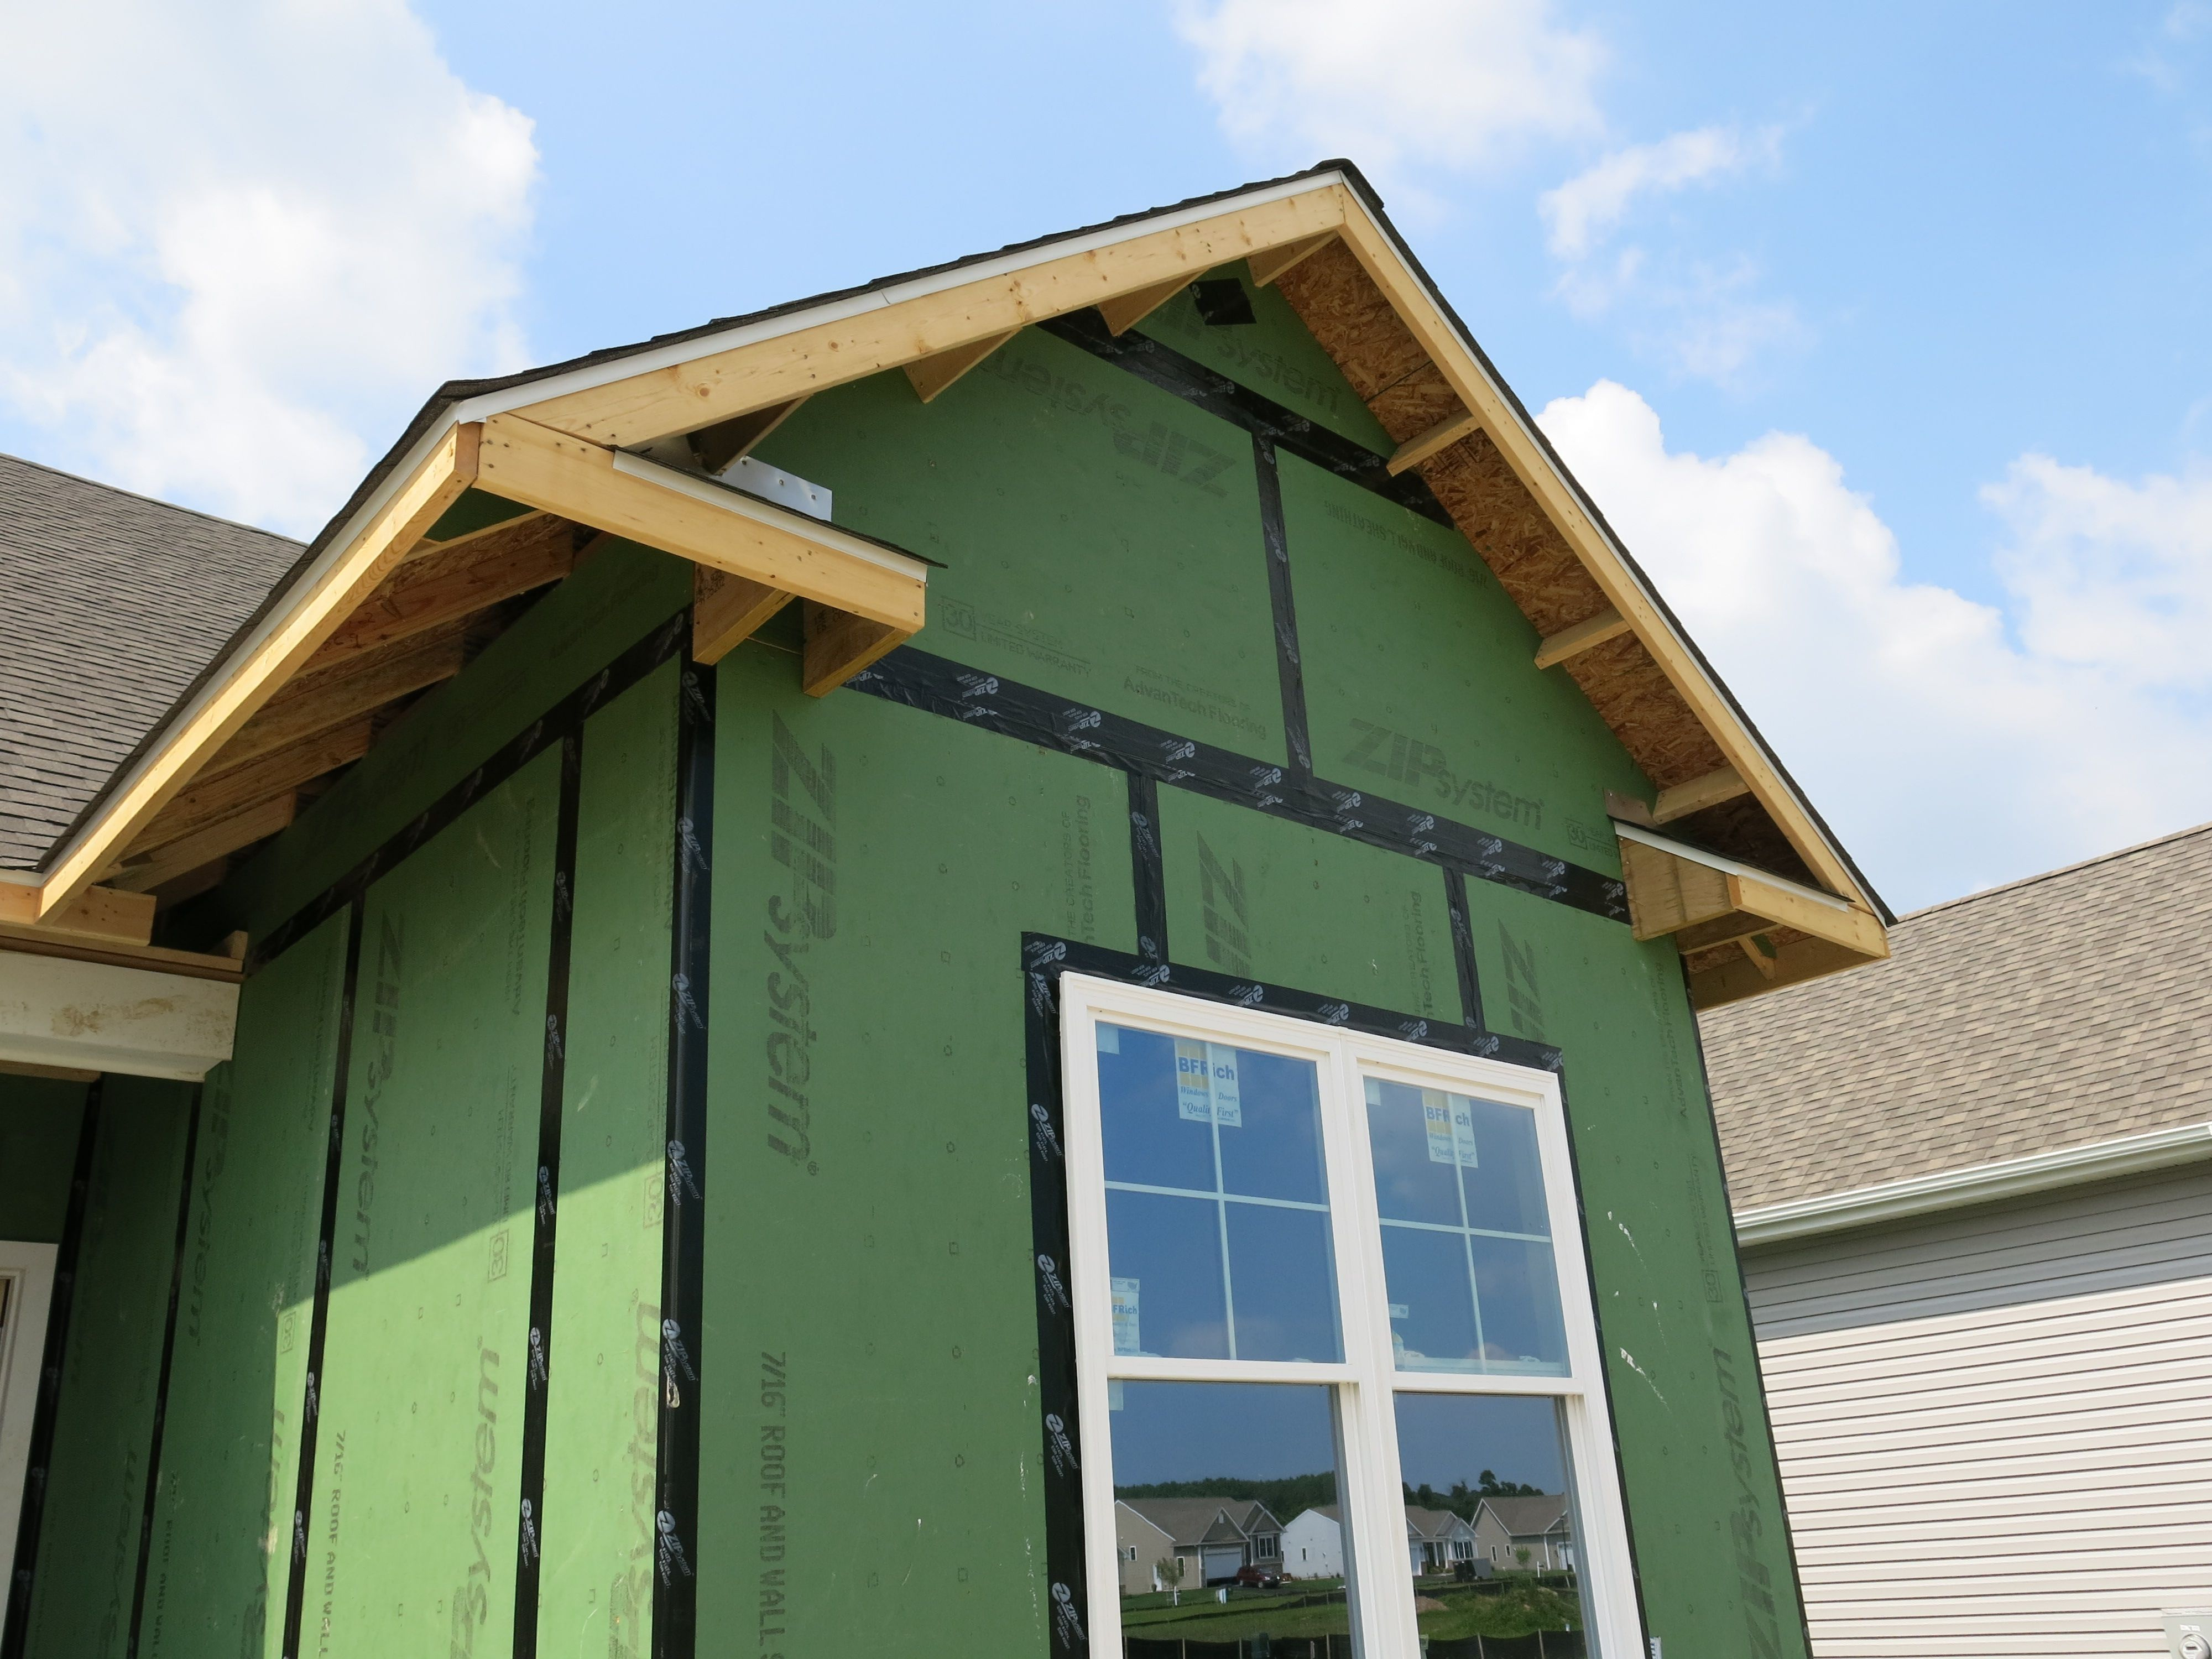 The Zip Wall System Makes Sheathing The House Quick And Efficient